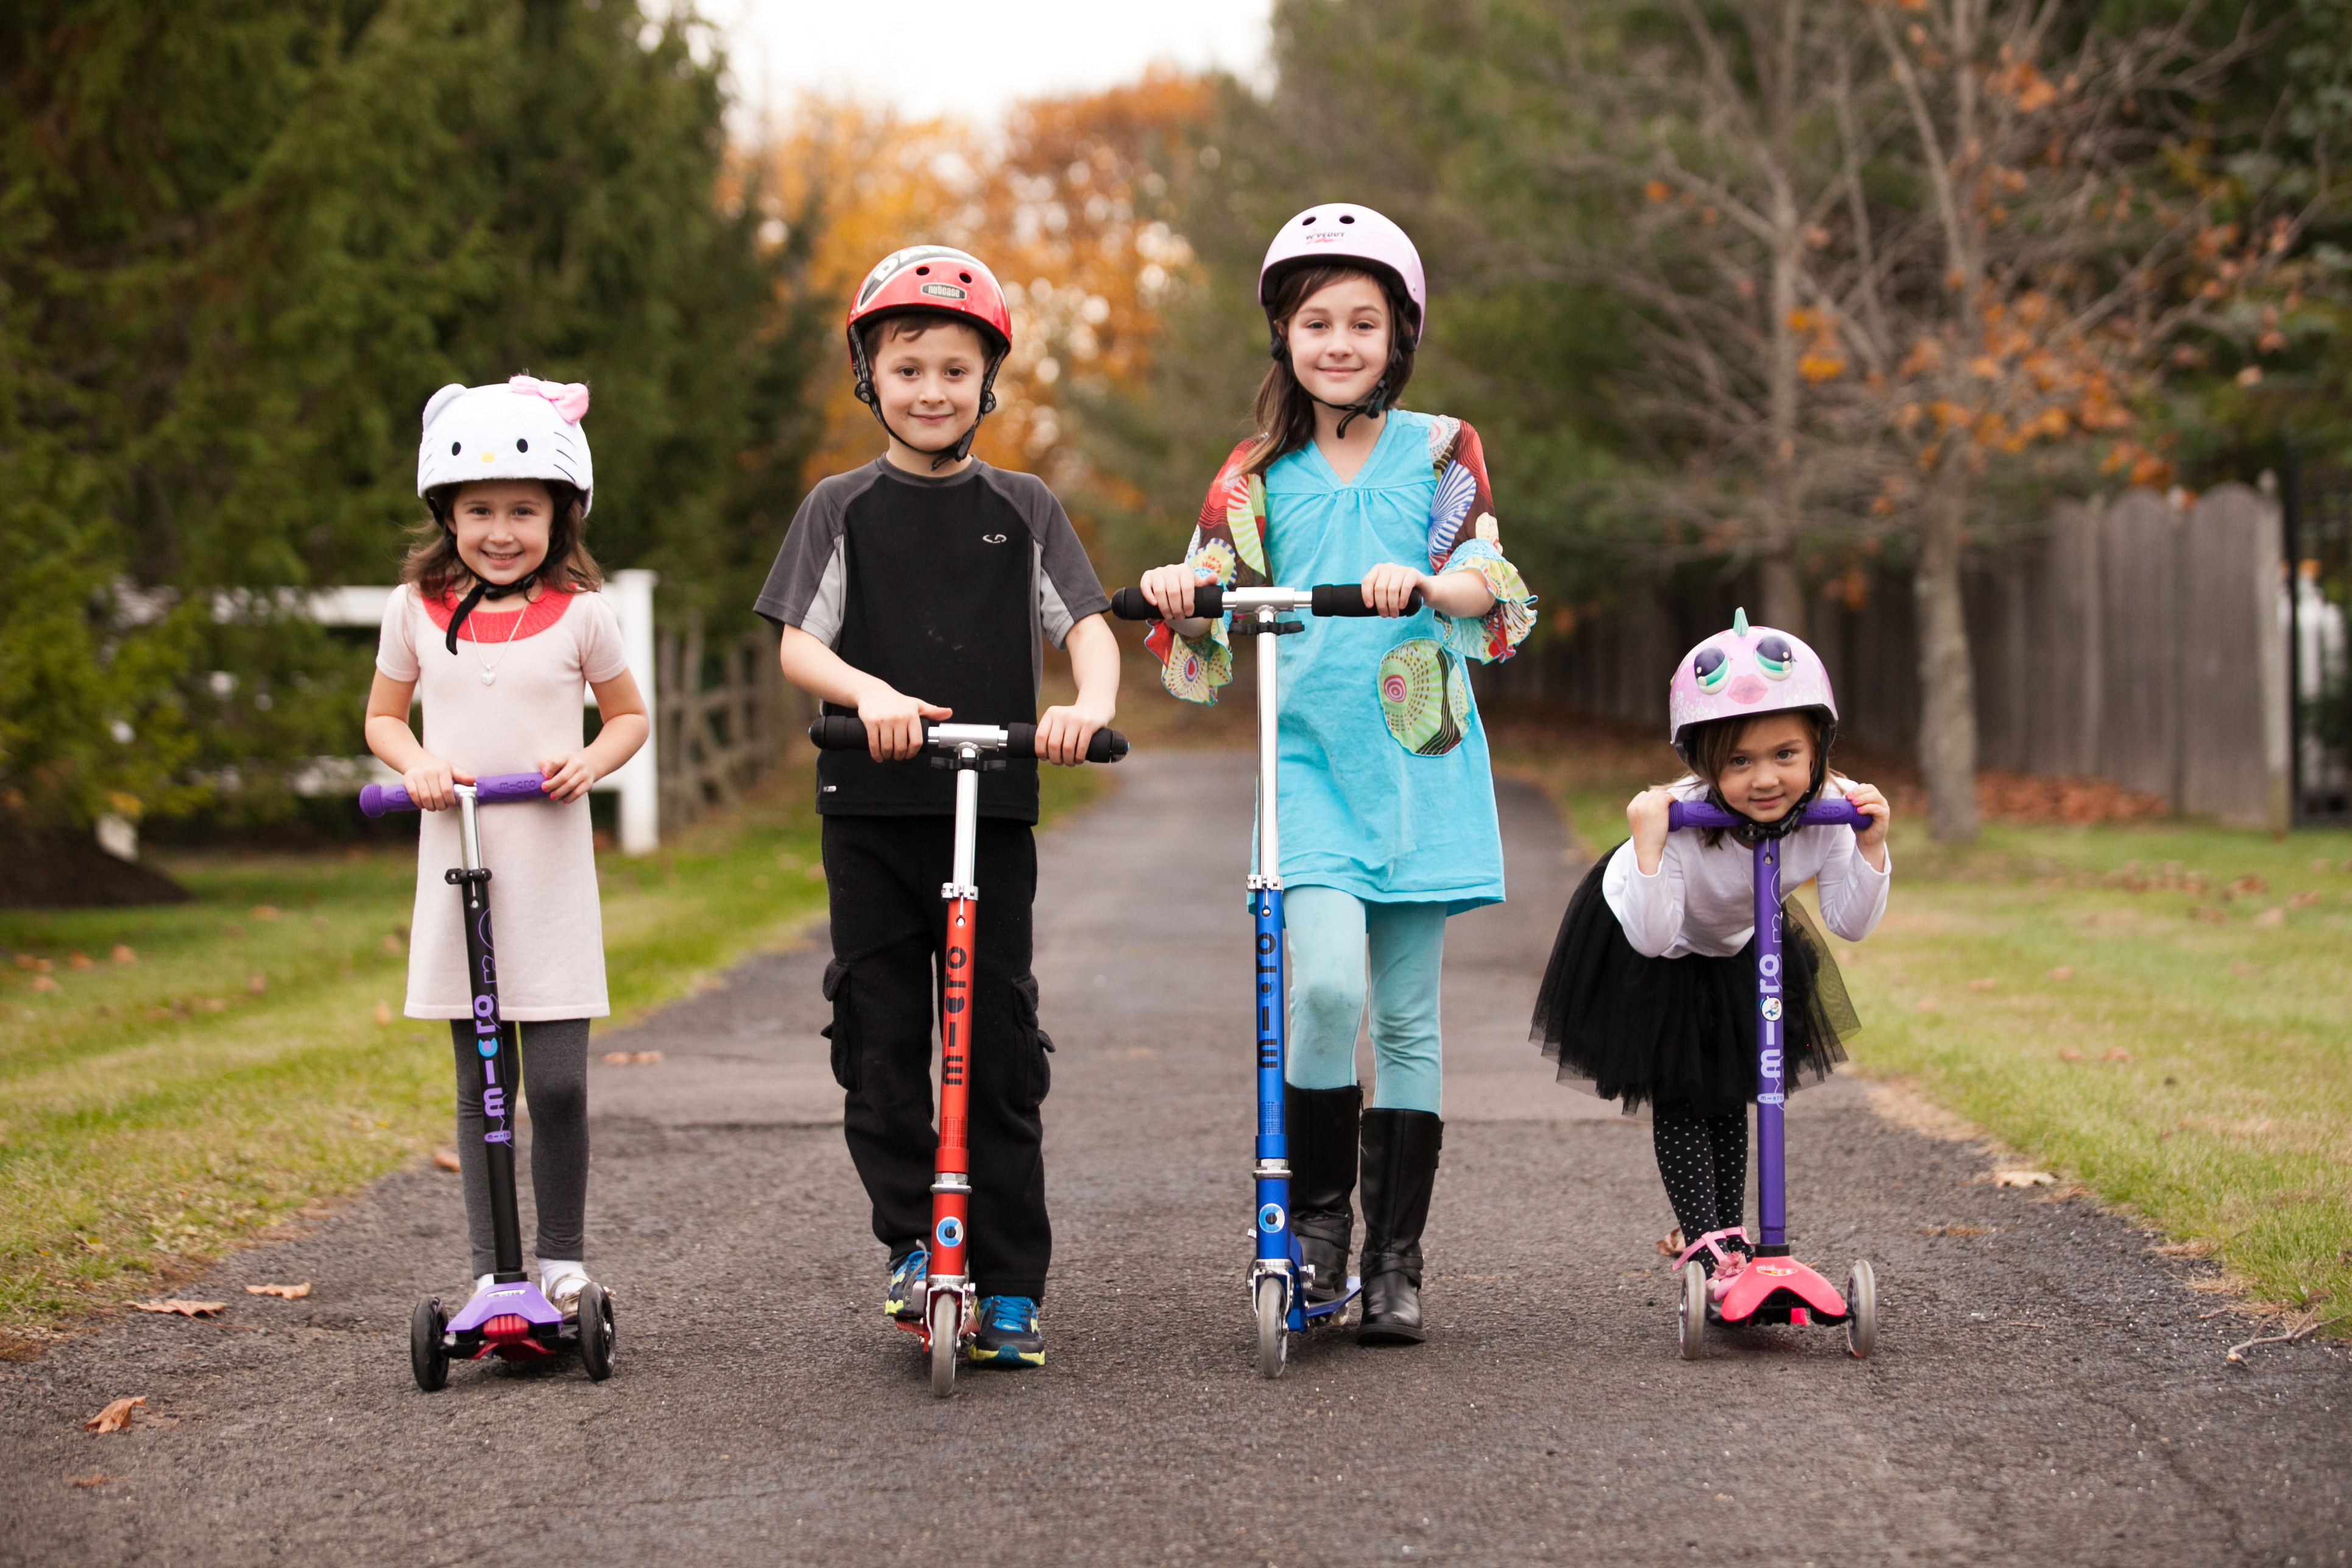 6 reasons why Micro Kickboard could be the best first scooter for your kids